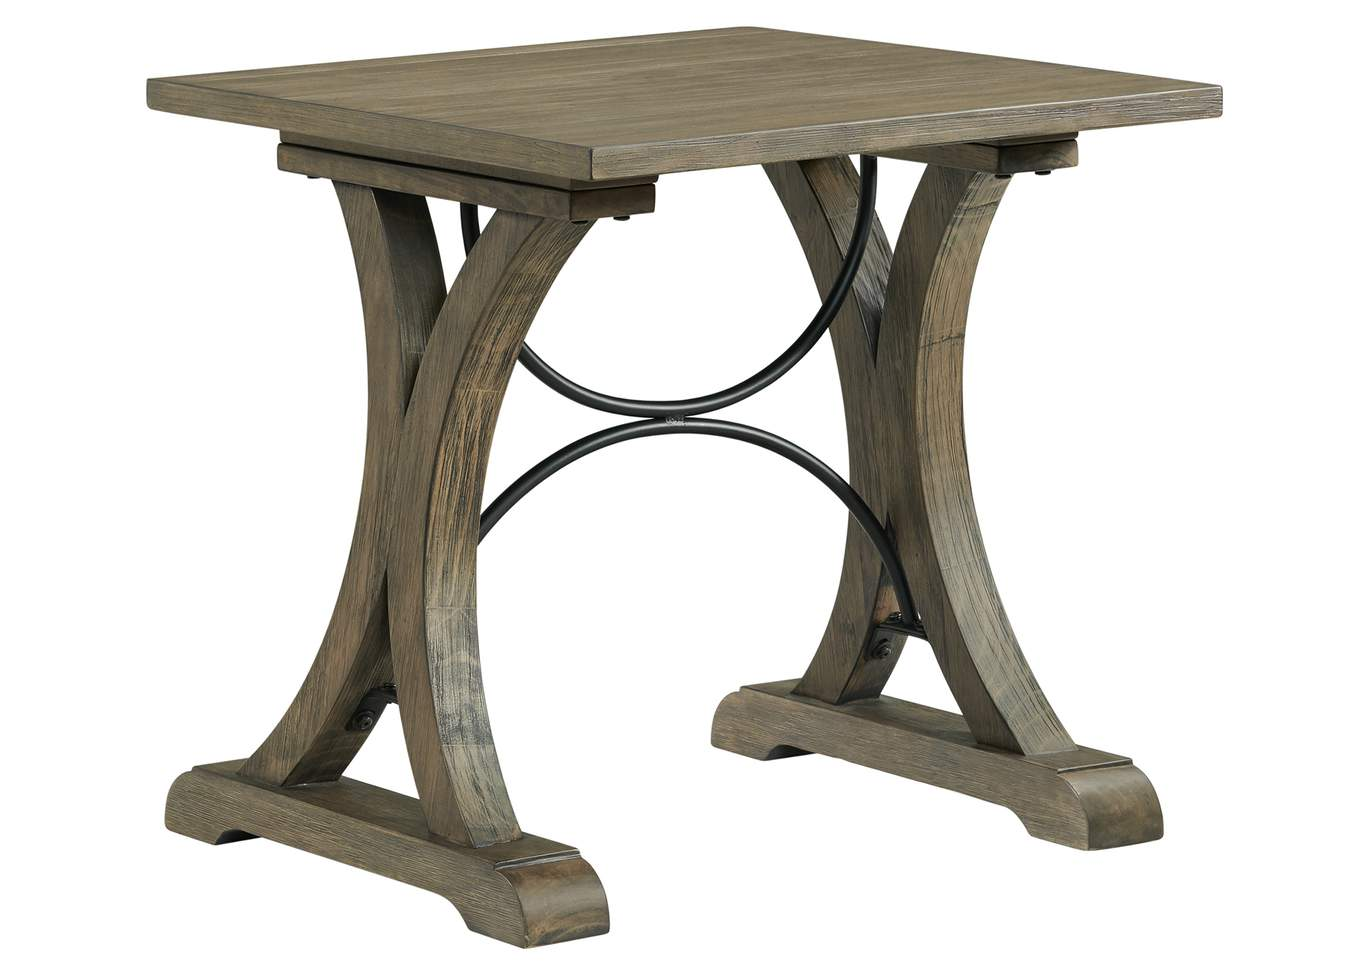 7047 End Table,Lane Furniture